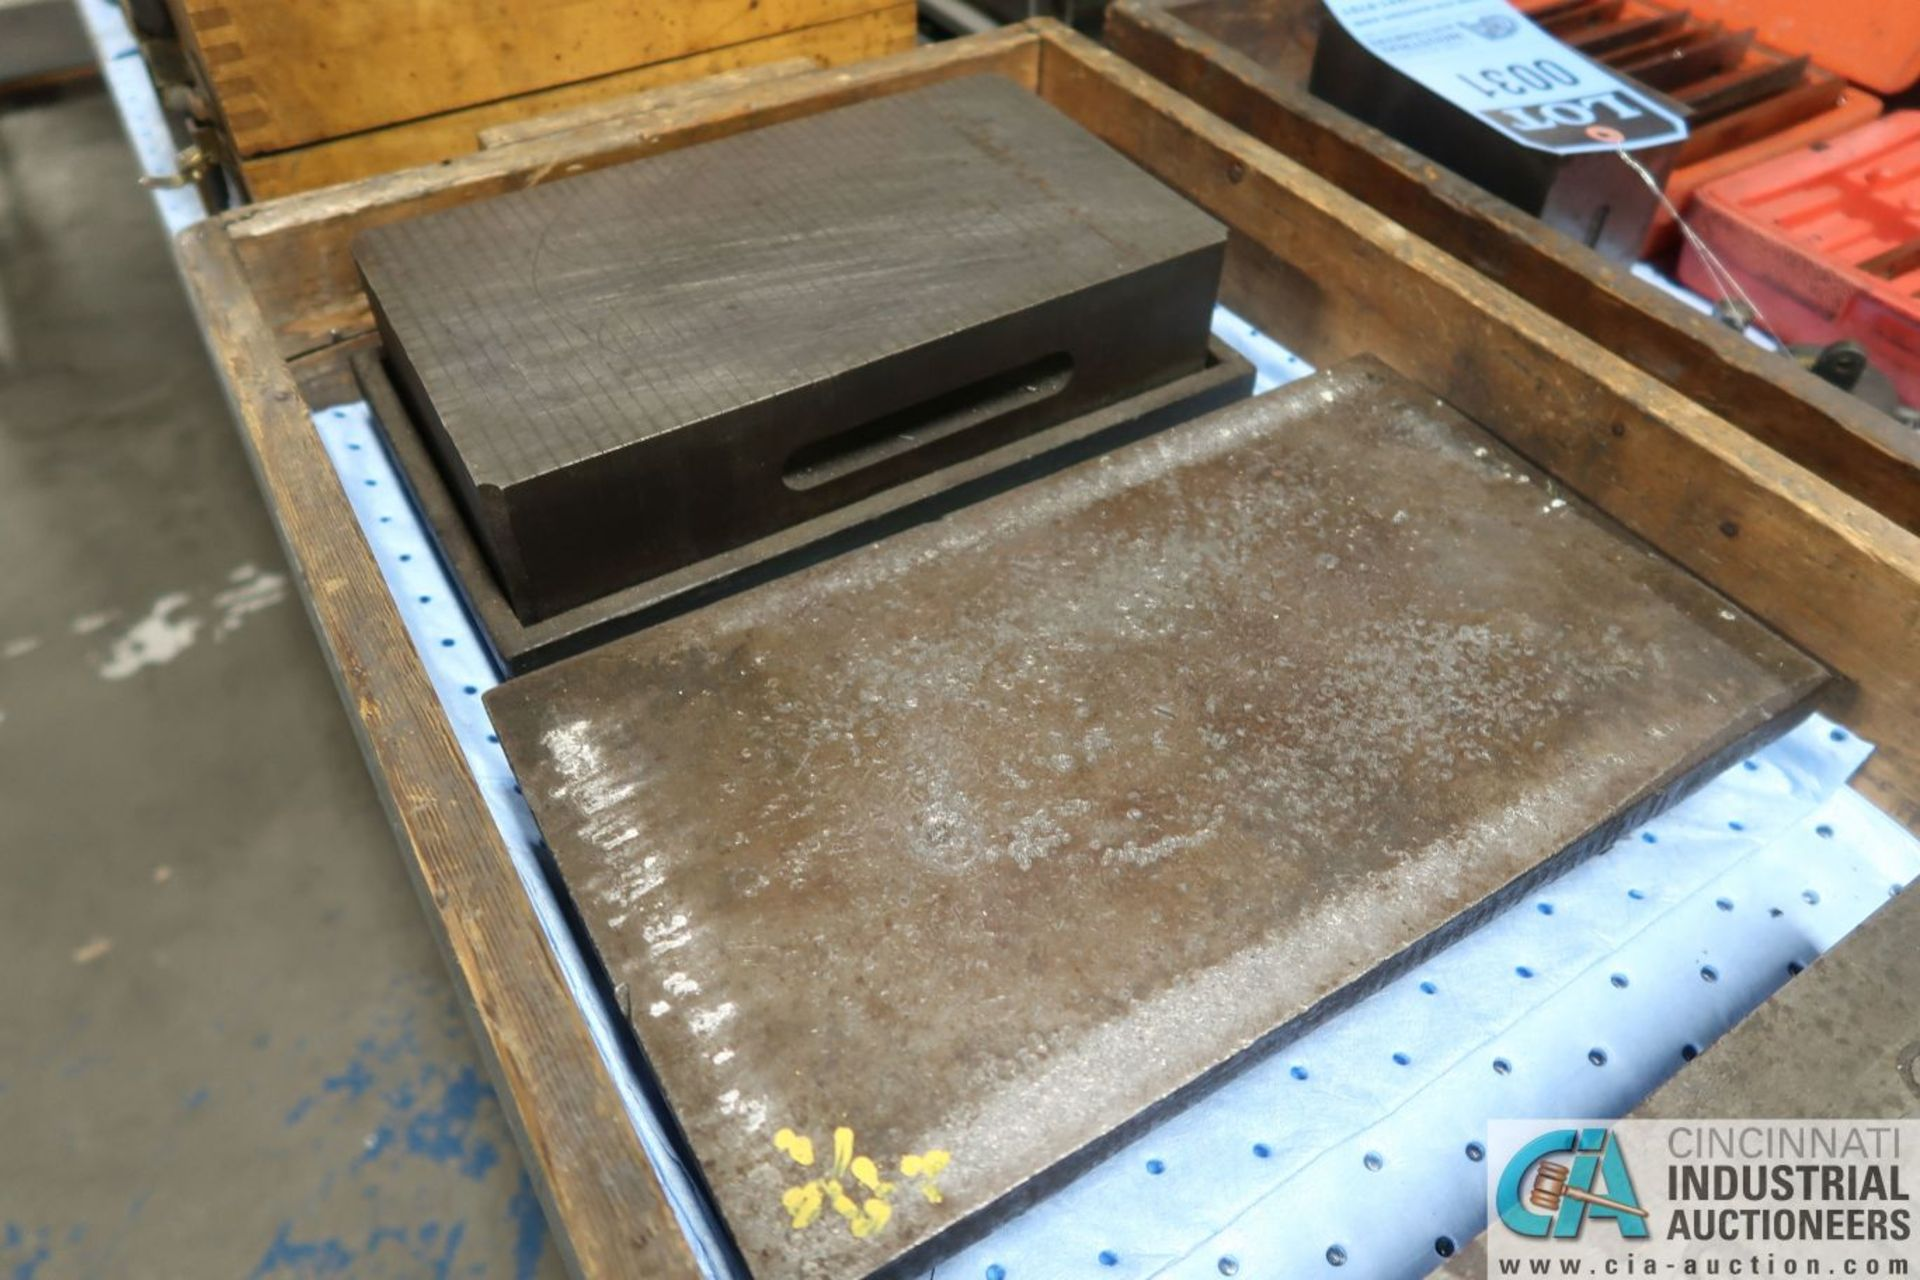 """6-1/2"""" X 11"""" X 3"""", 7-1/2"""" X 13"""" X 2-1/2"""" CAST IRON SURFACE PLATES WITH 5-1/2"""" X 10-1/2"""" MAGNETIC - Image 3 of 3"""